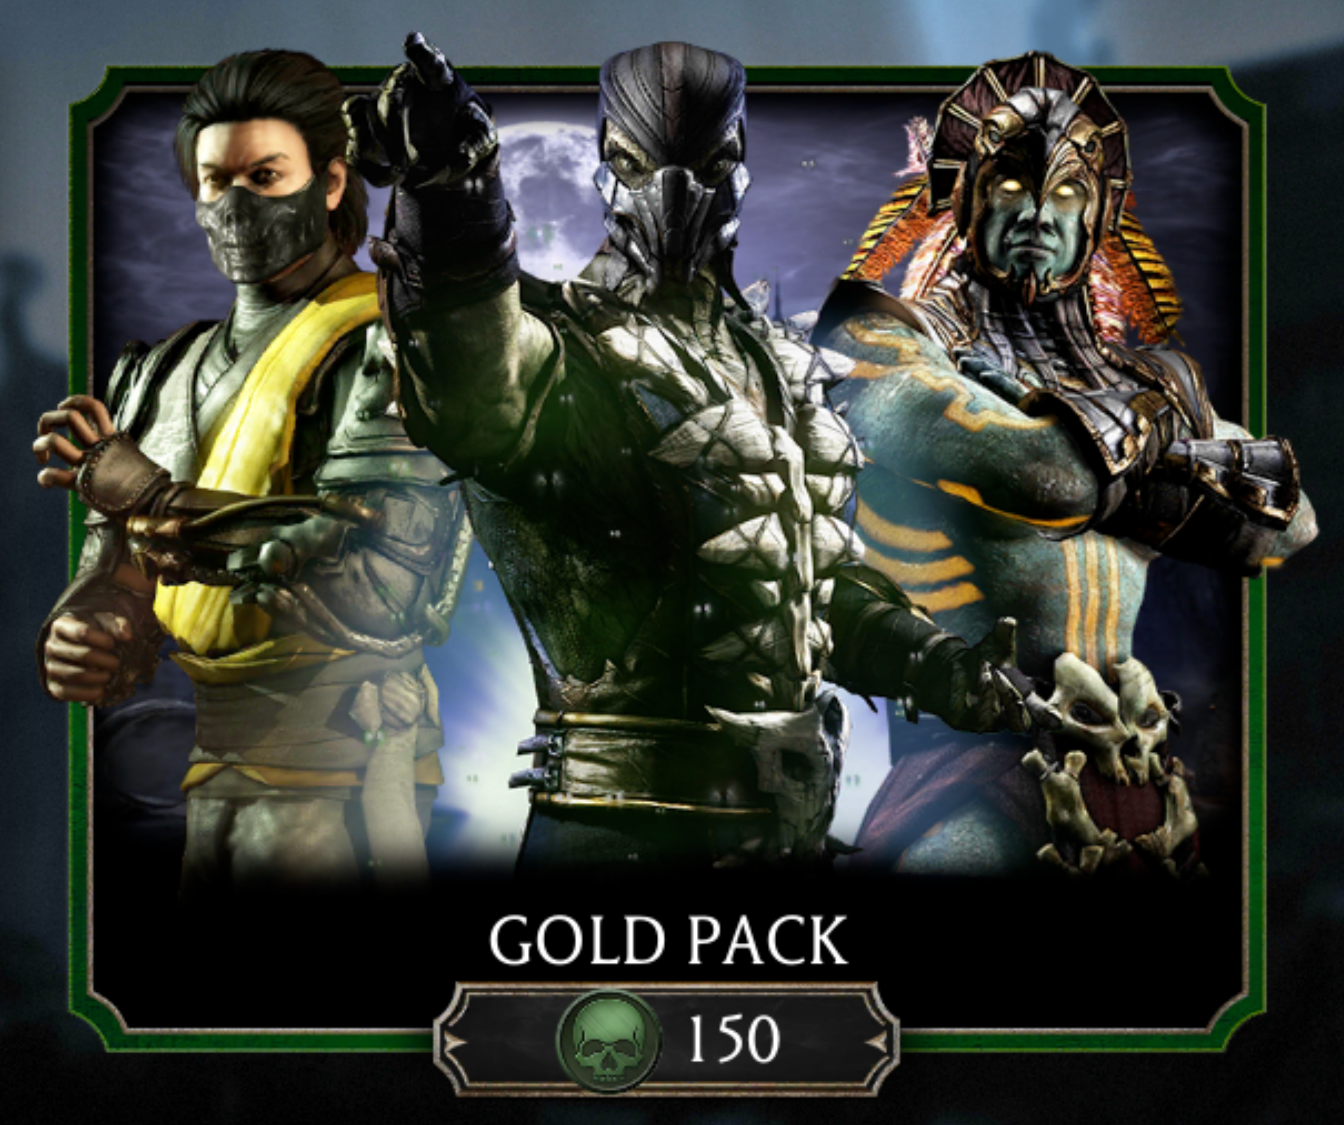 Gold Pack | Mortal Kombat Mobile Wikia | FANDOM powered by Wikia